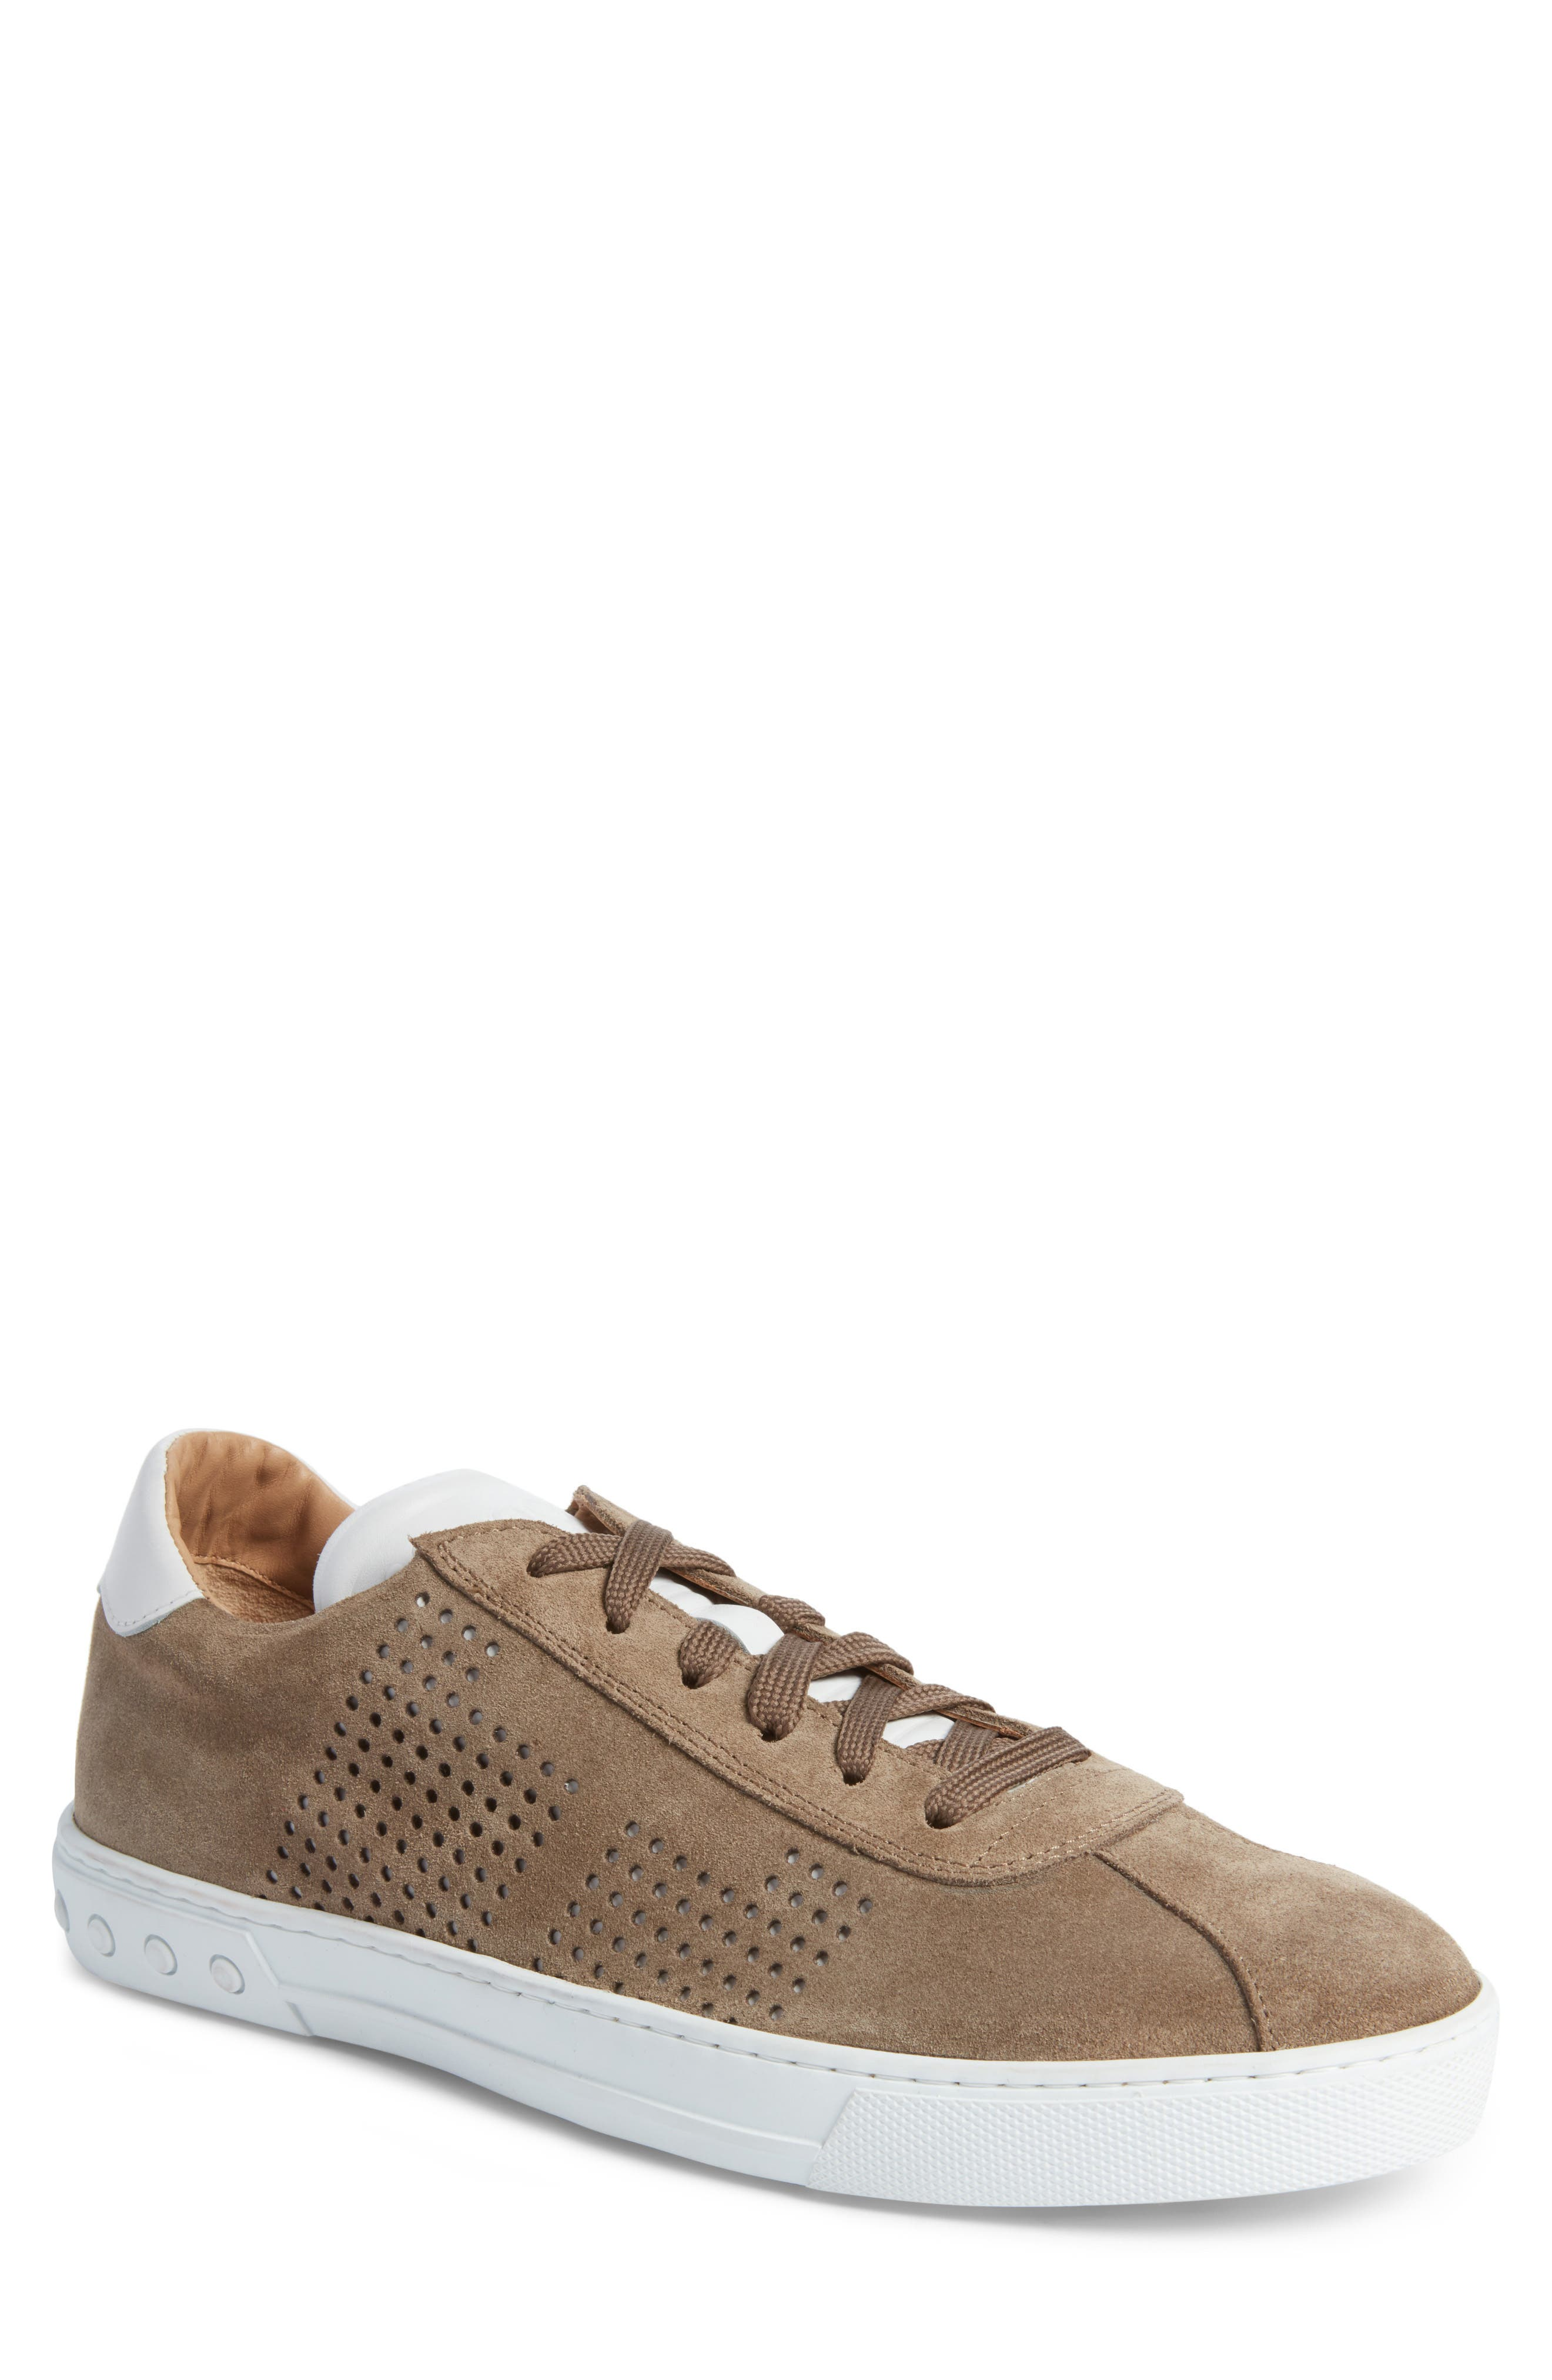 Cassetta Sneaker,                         Main,                         color, Taupe